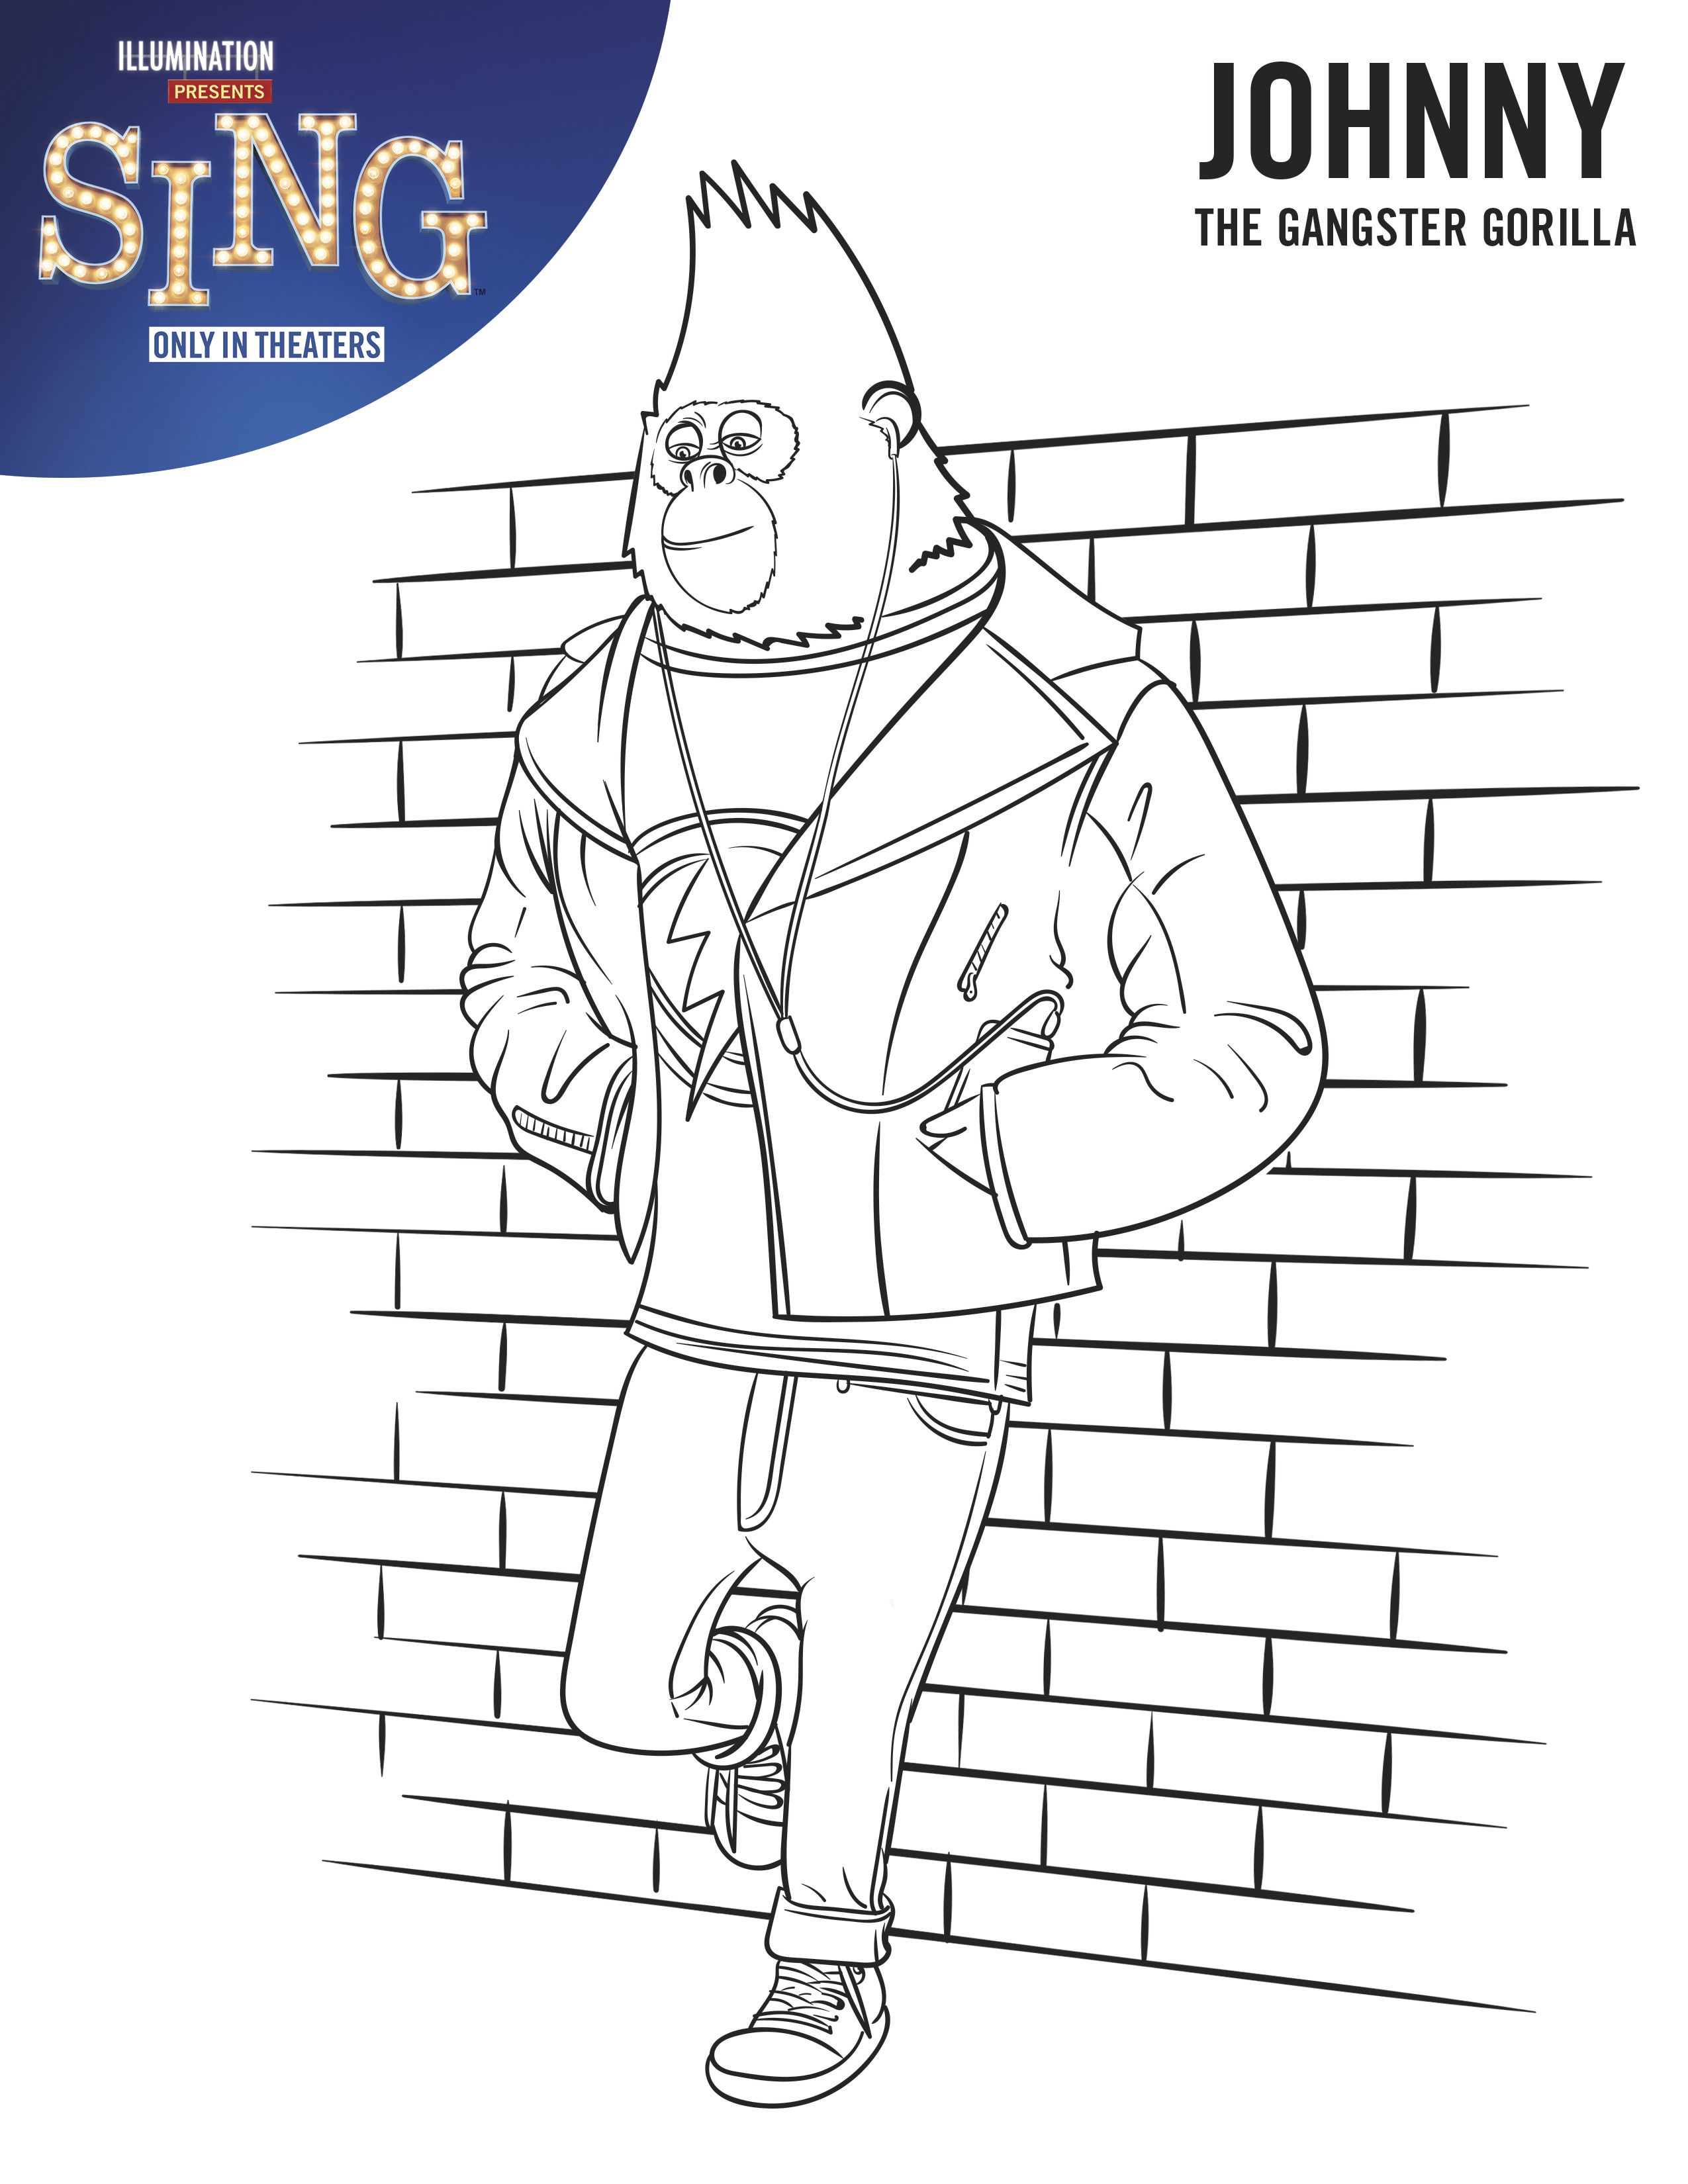 Johny - Sing Movie Coloring Page | Coloring Pages | Pinterest